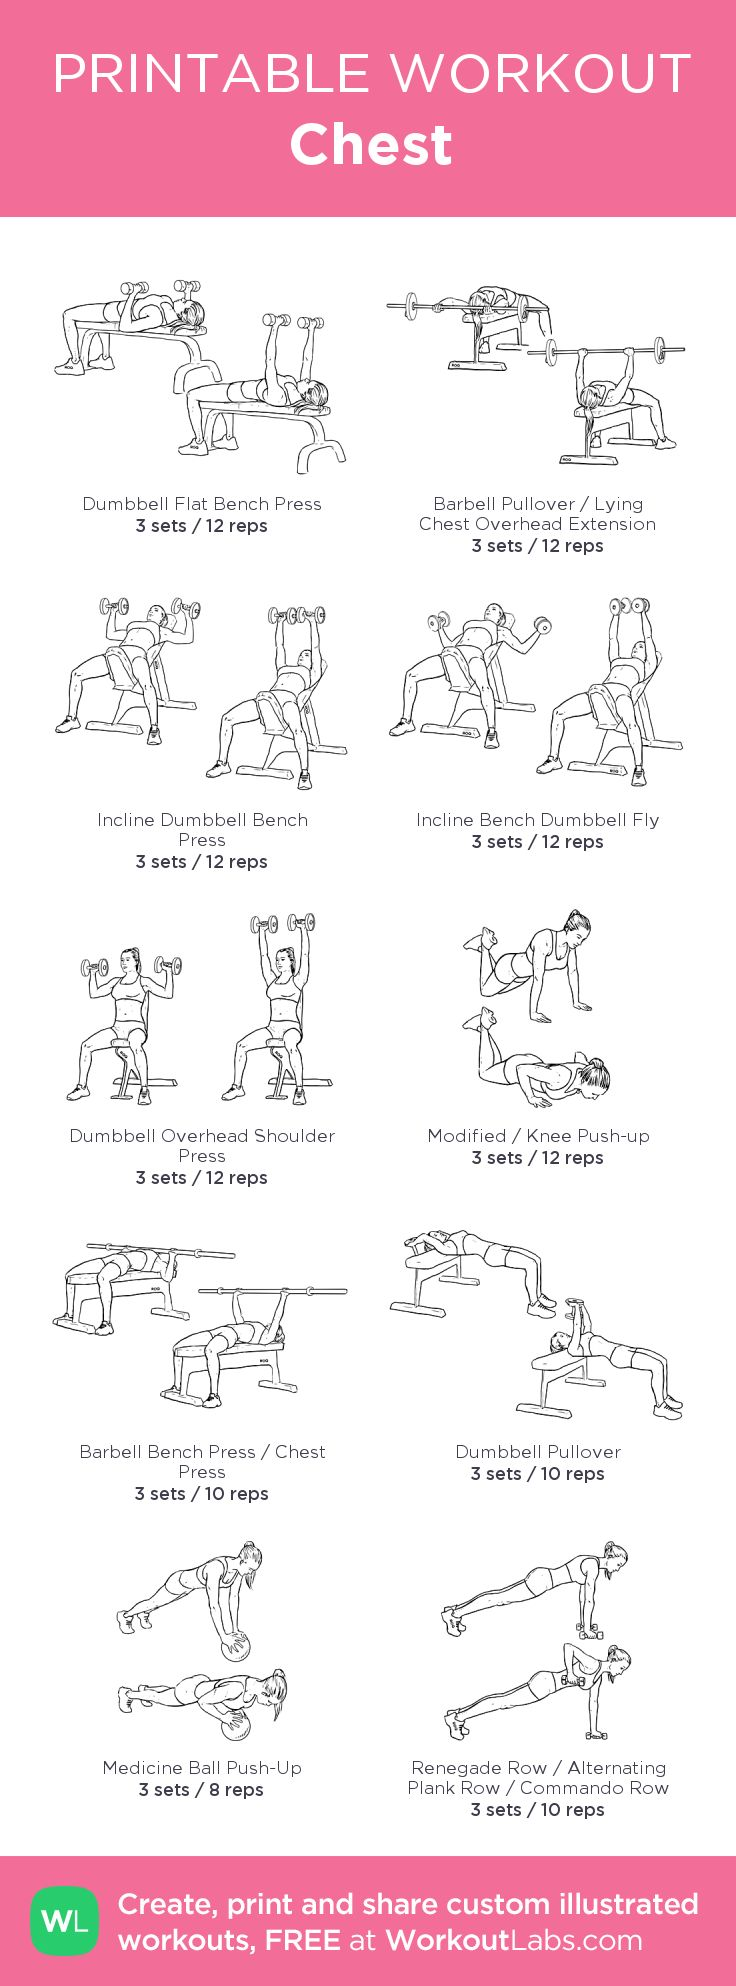 Chest – my custom workout created at WorkoutLabs.com • Click through to download as printable PDF! #customworkout